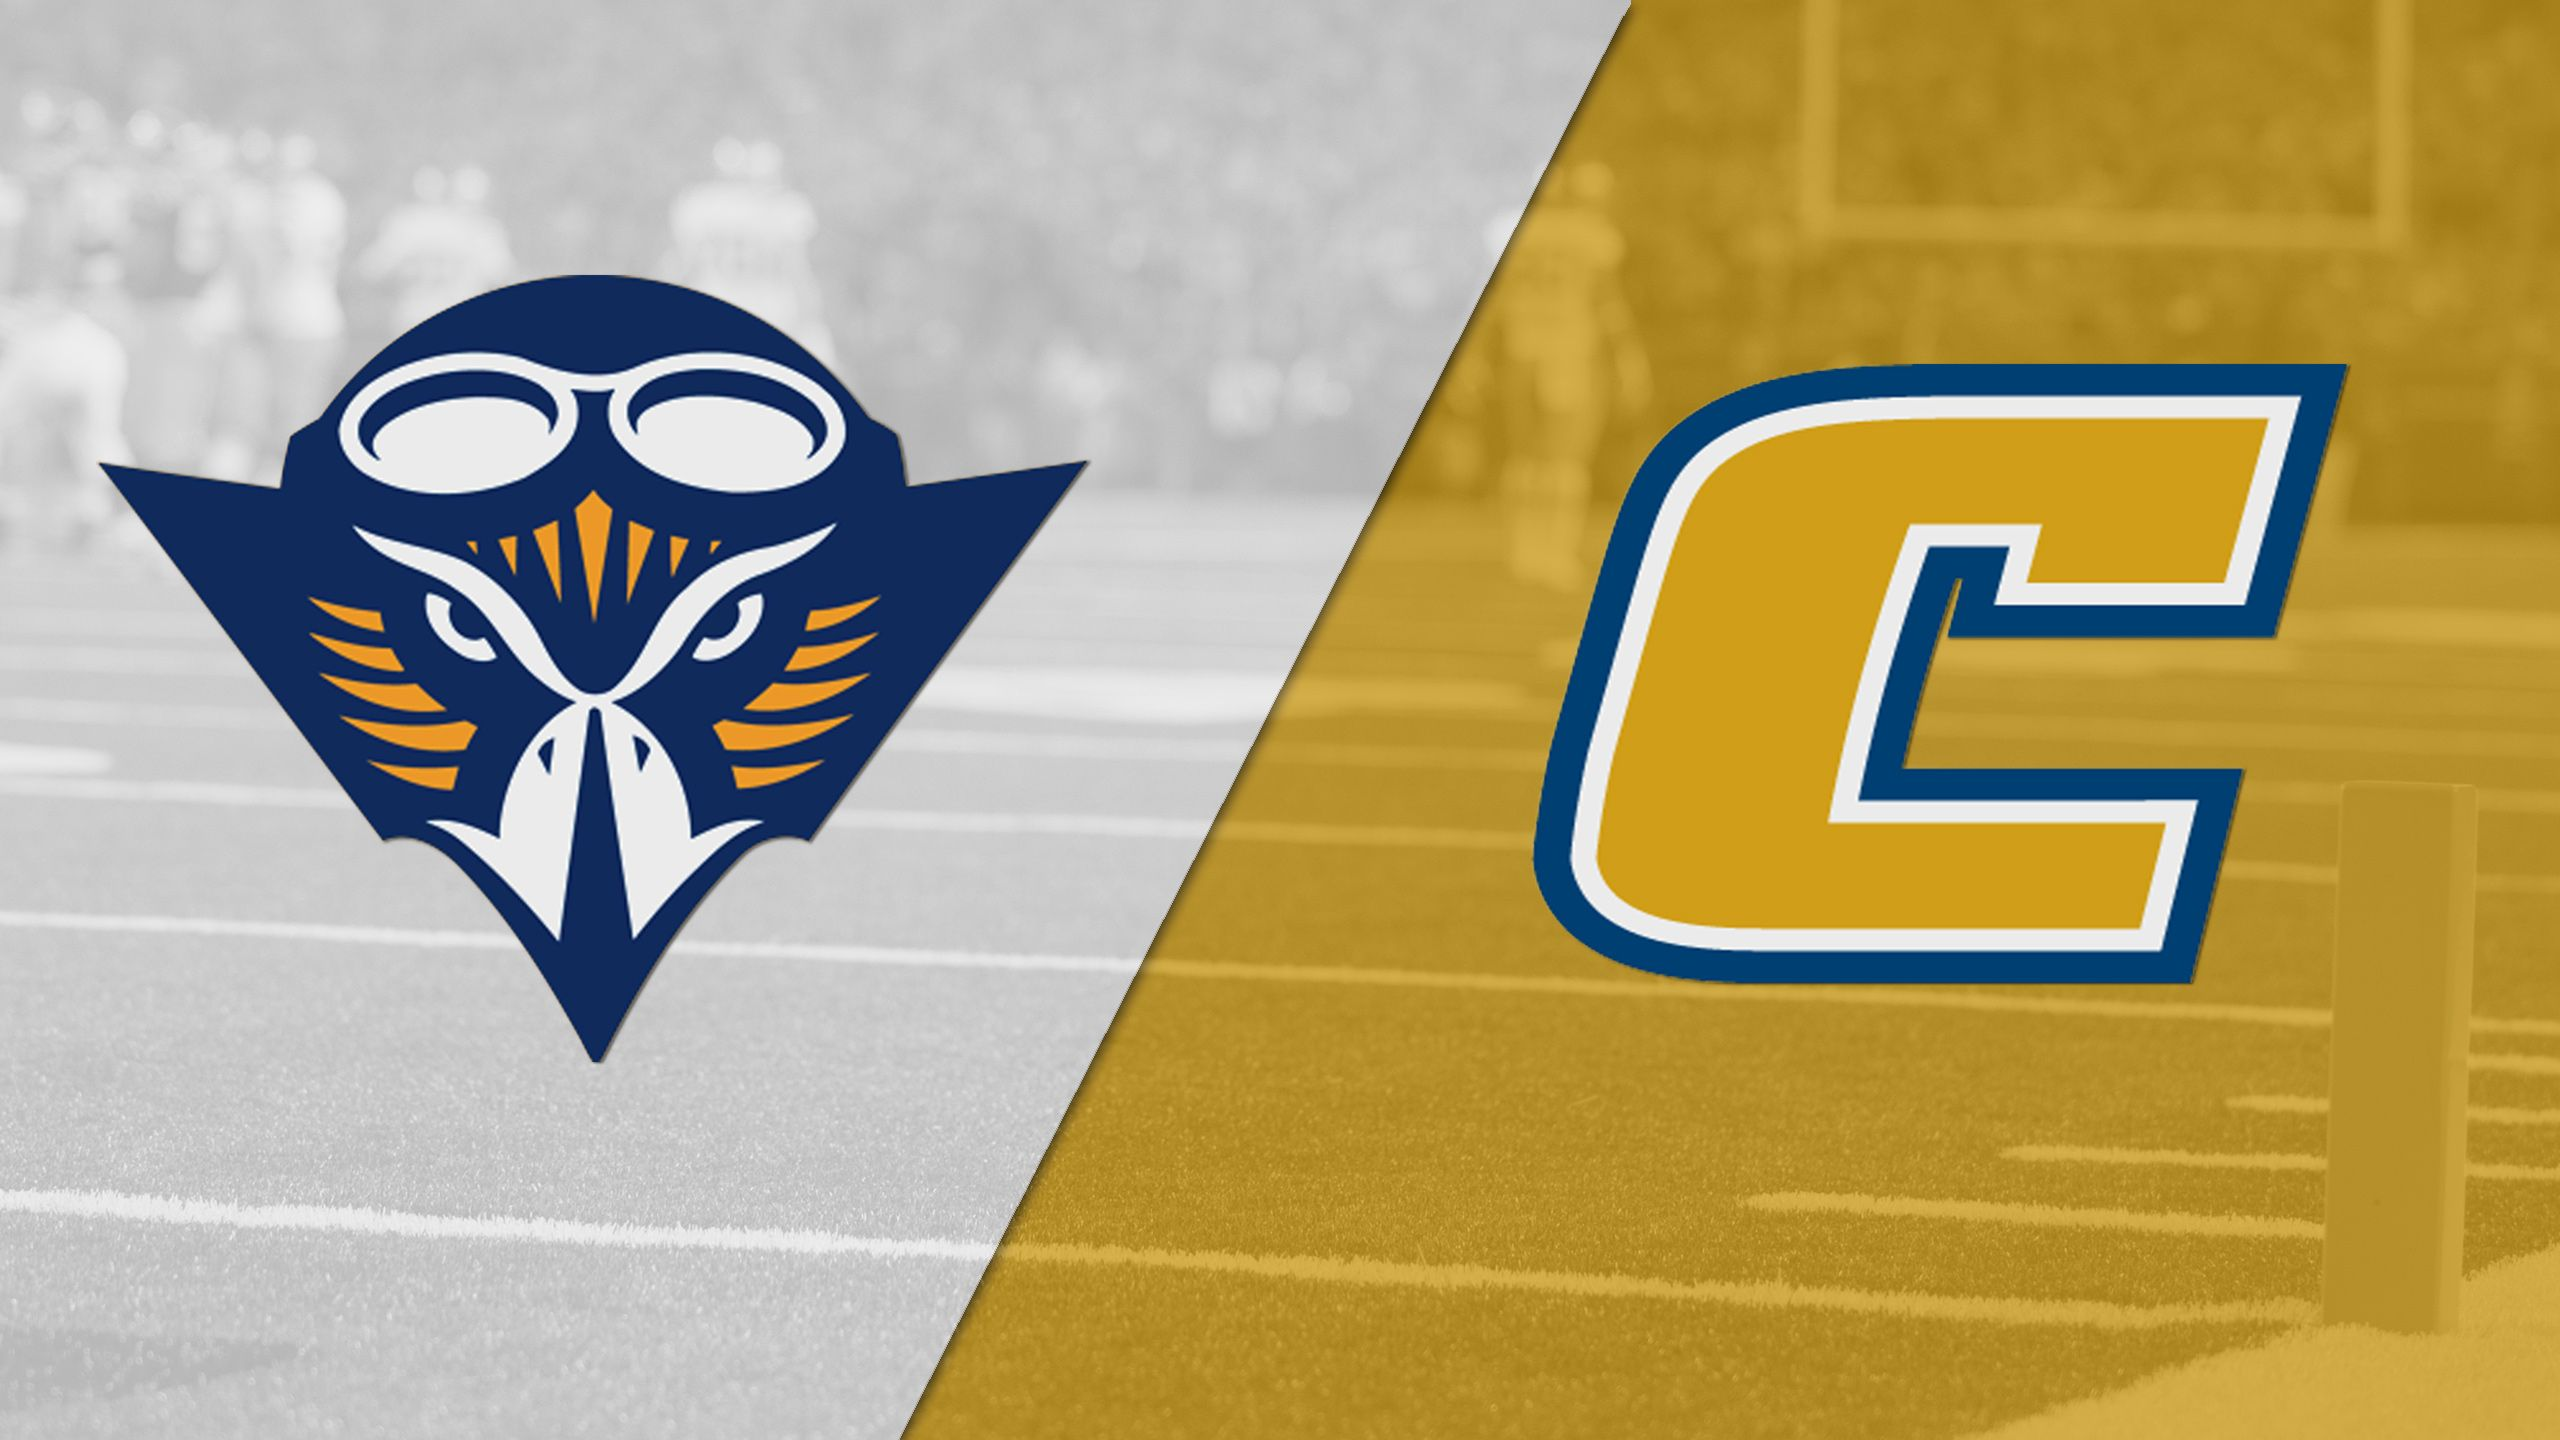 UT Martin vs. Chattanooga (Football)